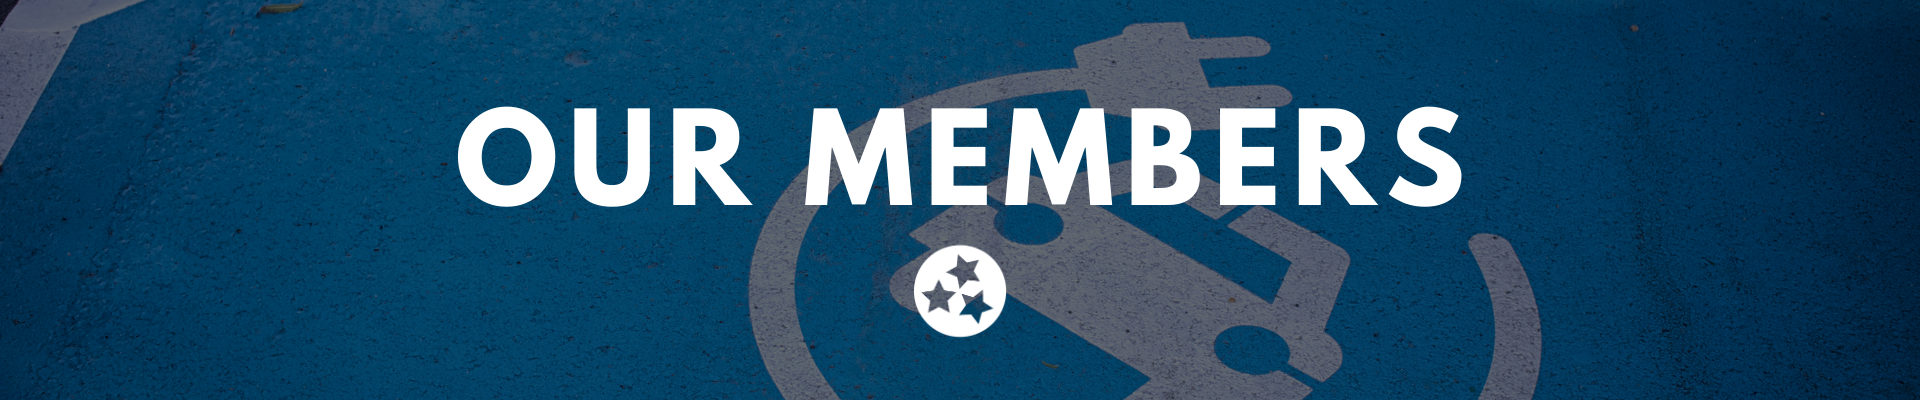 EV graphic, 'Our Members'